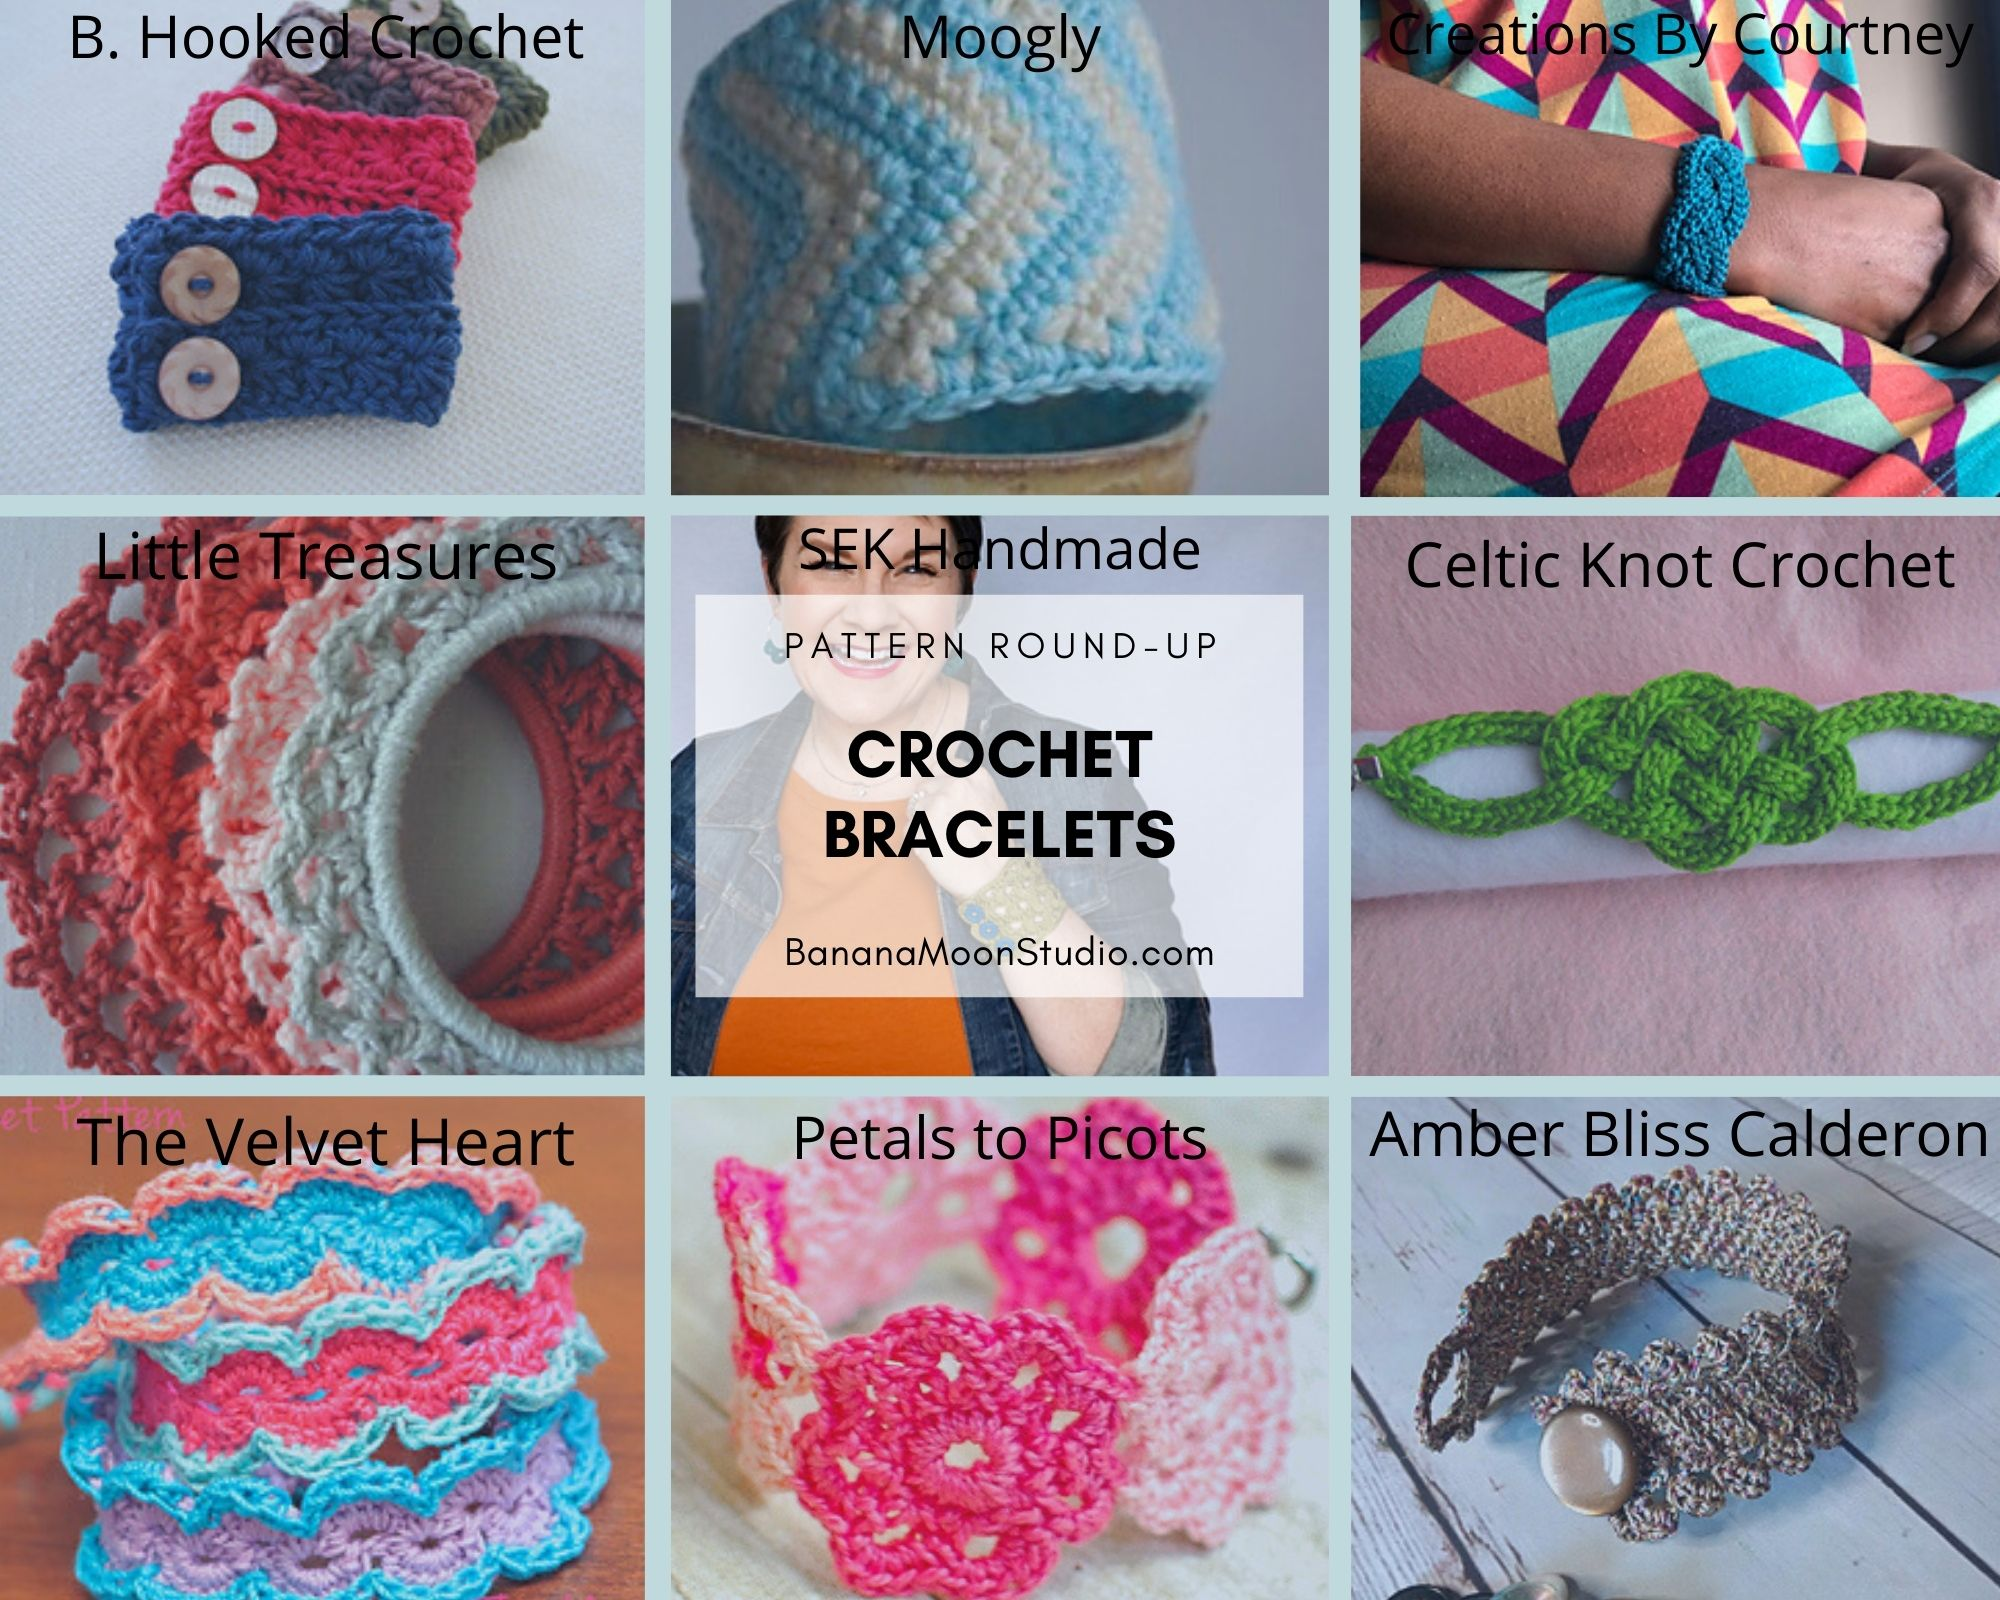 Photo collage of crochet bracelets of all different types and colors. Text reads: B. Hooked Crochet, Moogly, Creations by Courtney, Little Treasures, SEK Handmade, Celtic Knot Crochet, The Velvet Heart, Petals to Picots, Amber Bliss Calderon. Pattern Round-up. Crochet bracelets. BananaMoonStudio.com